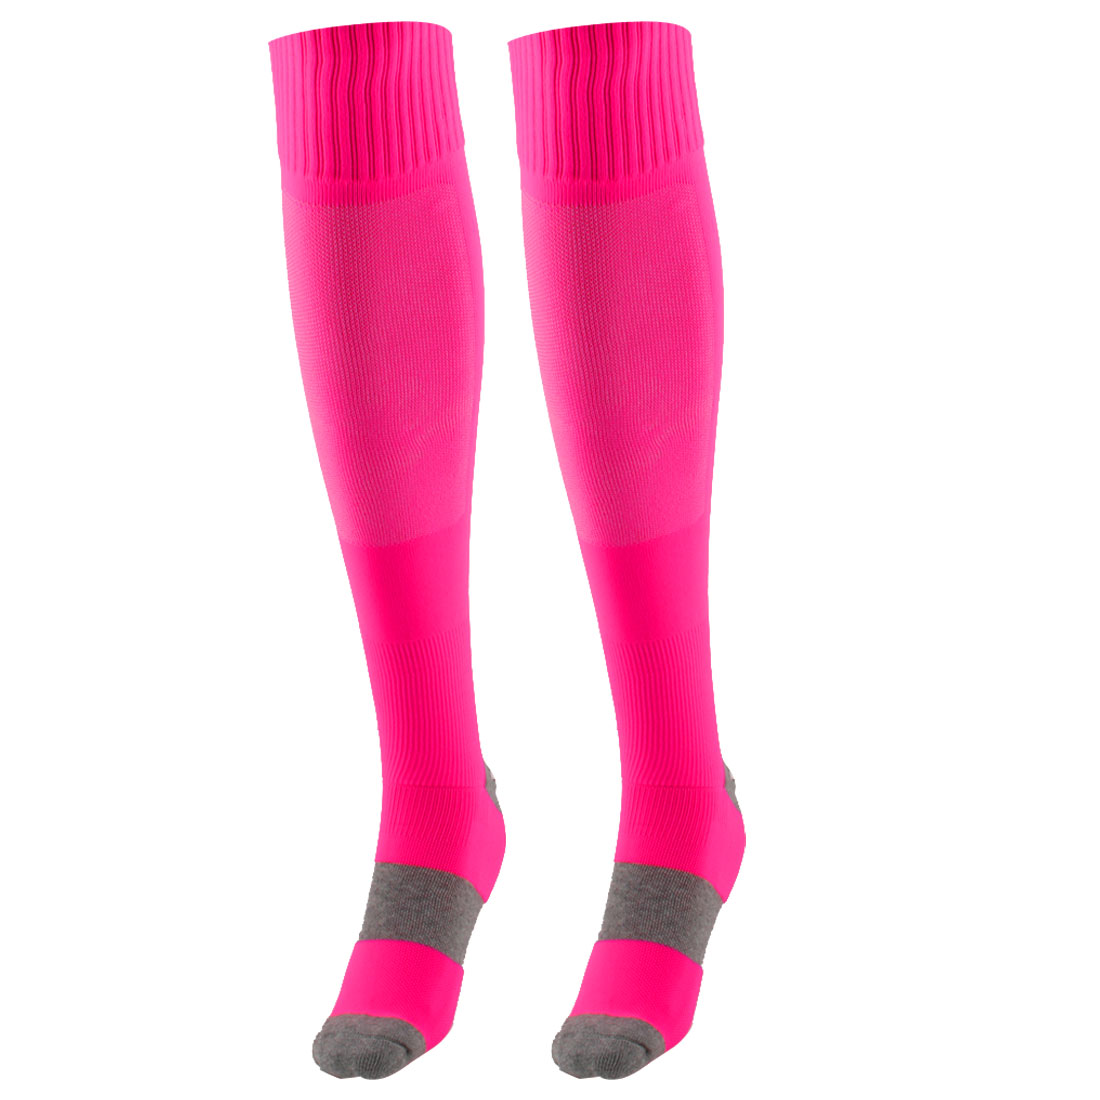 Unisex Outdoor Sports Nylon Non Slip Stretch Rugby Soccer Football Long Socks Rose Red Pair